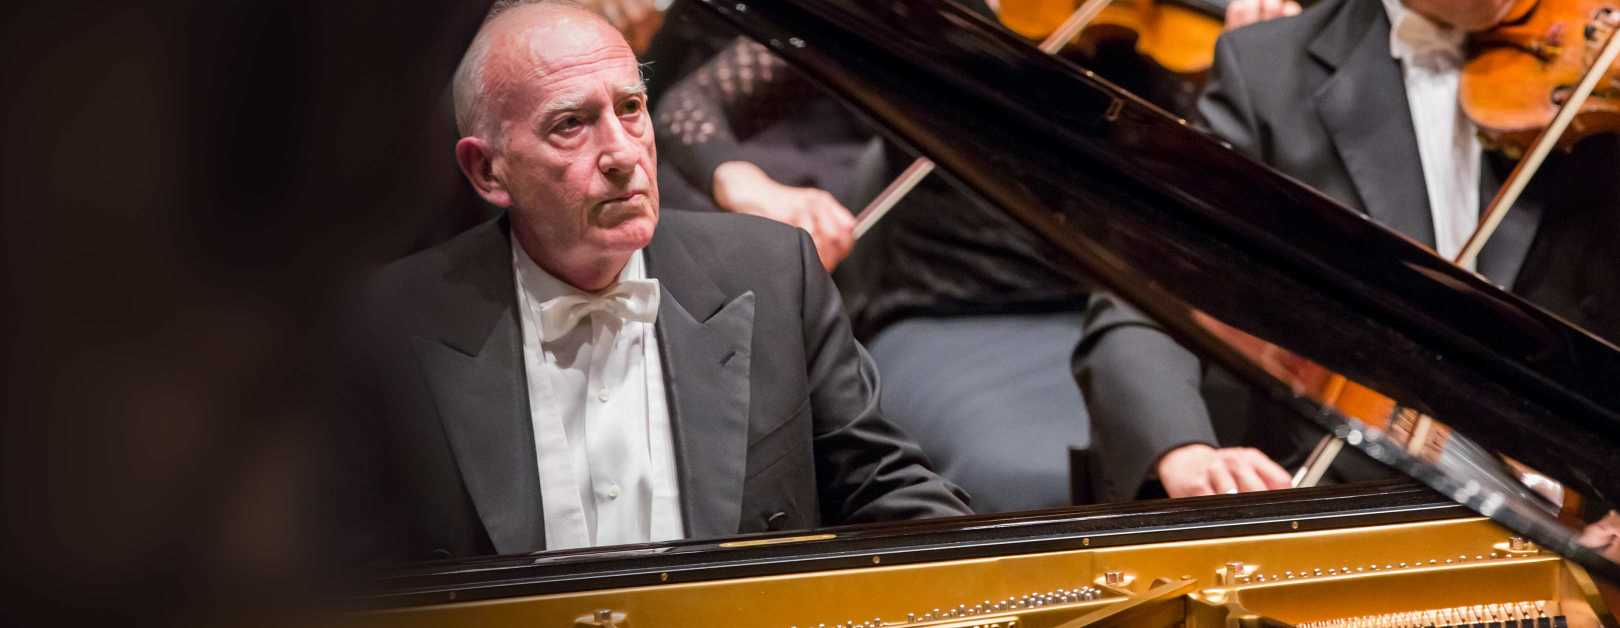 Maurizio Pollini with the New York Philharmonic